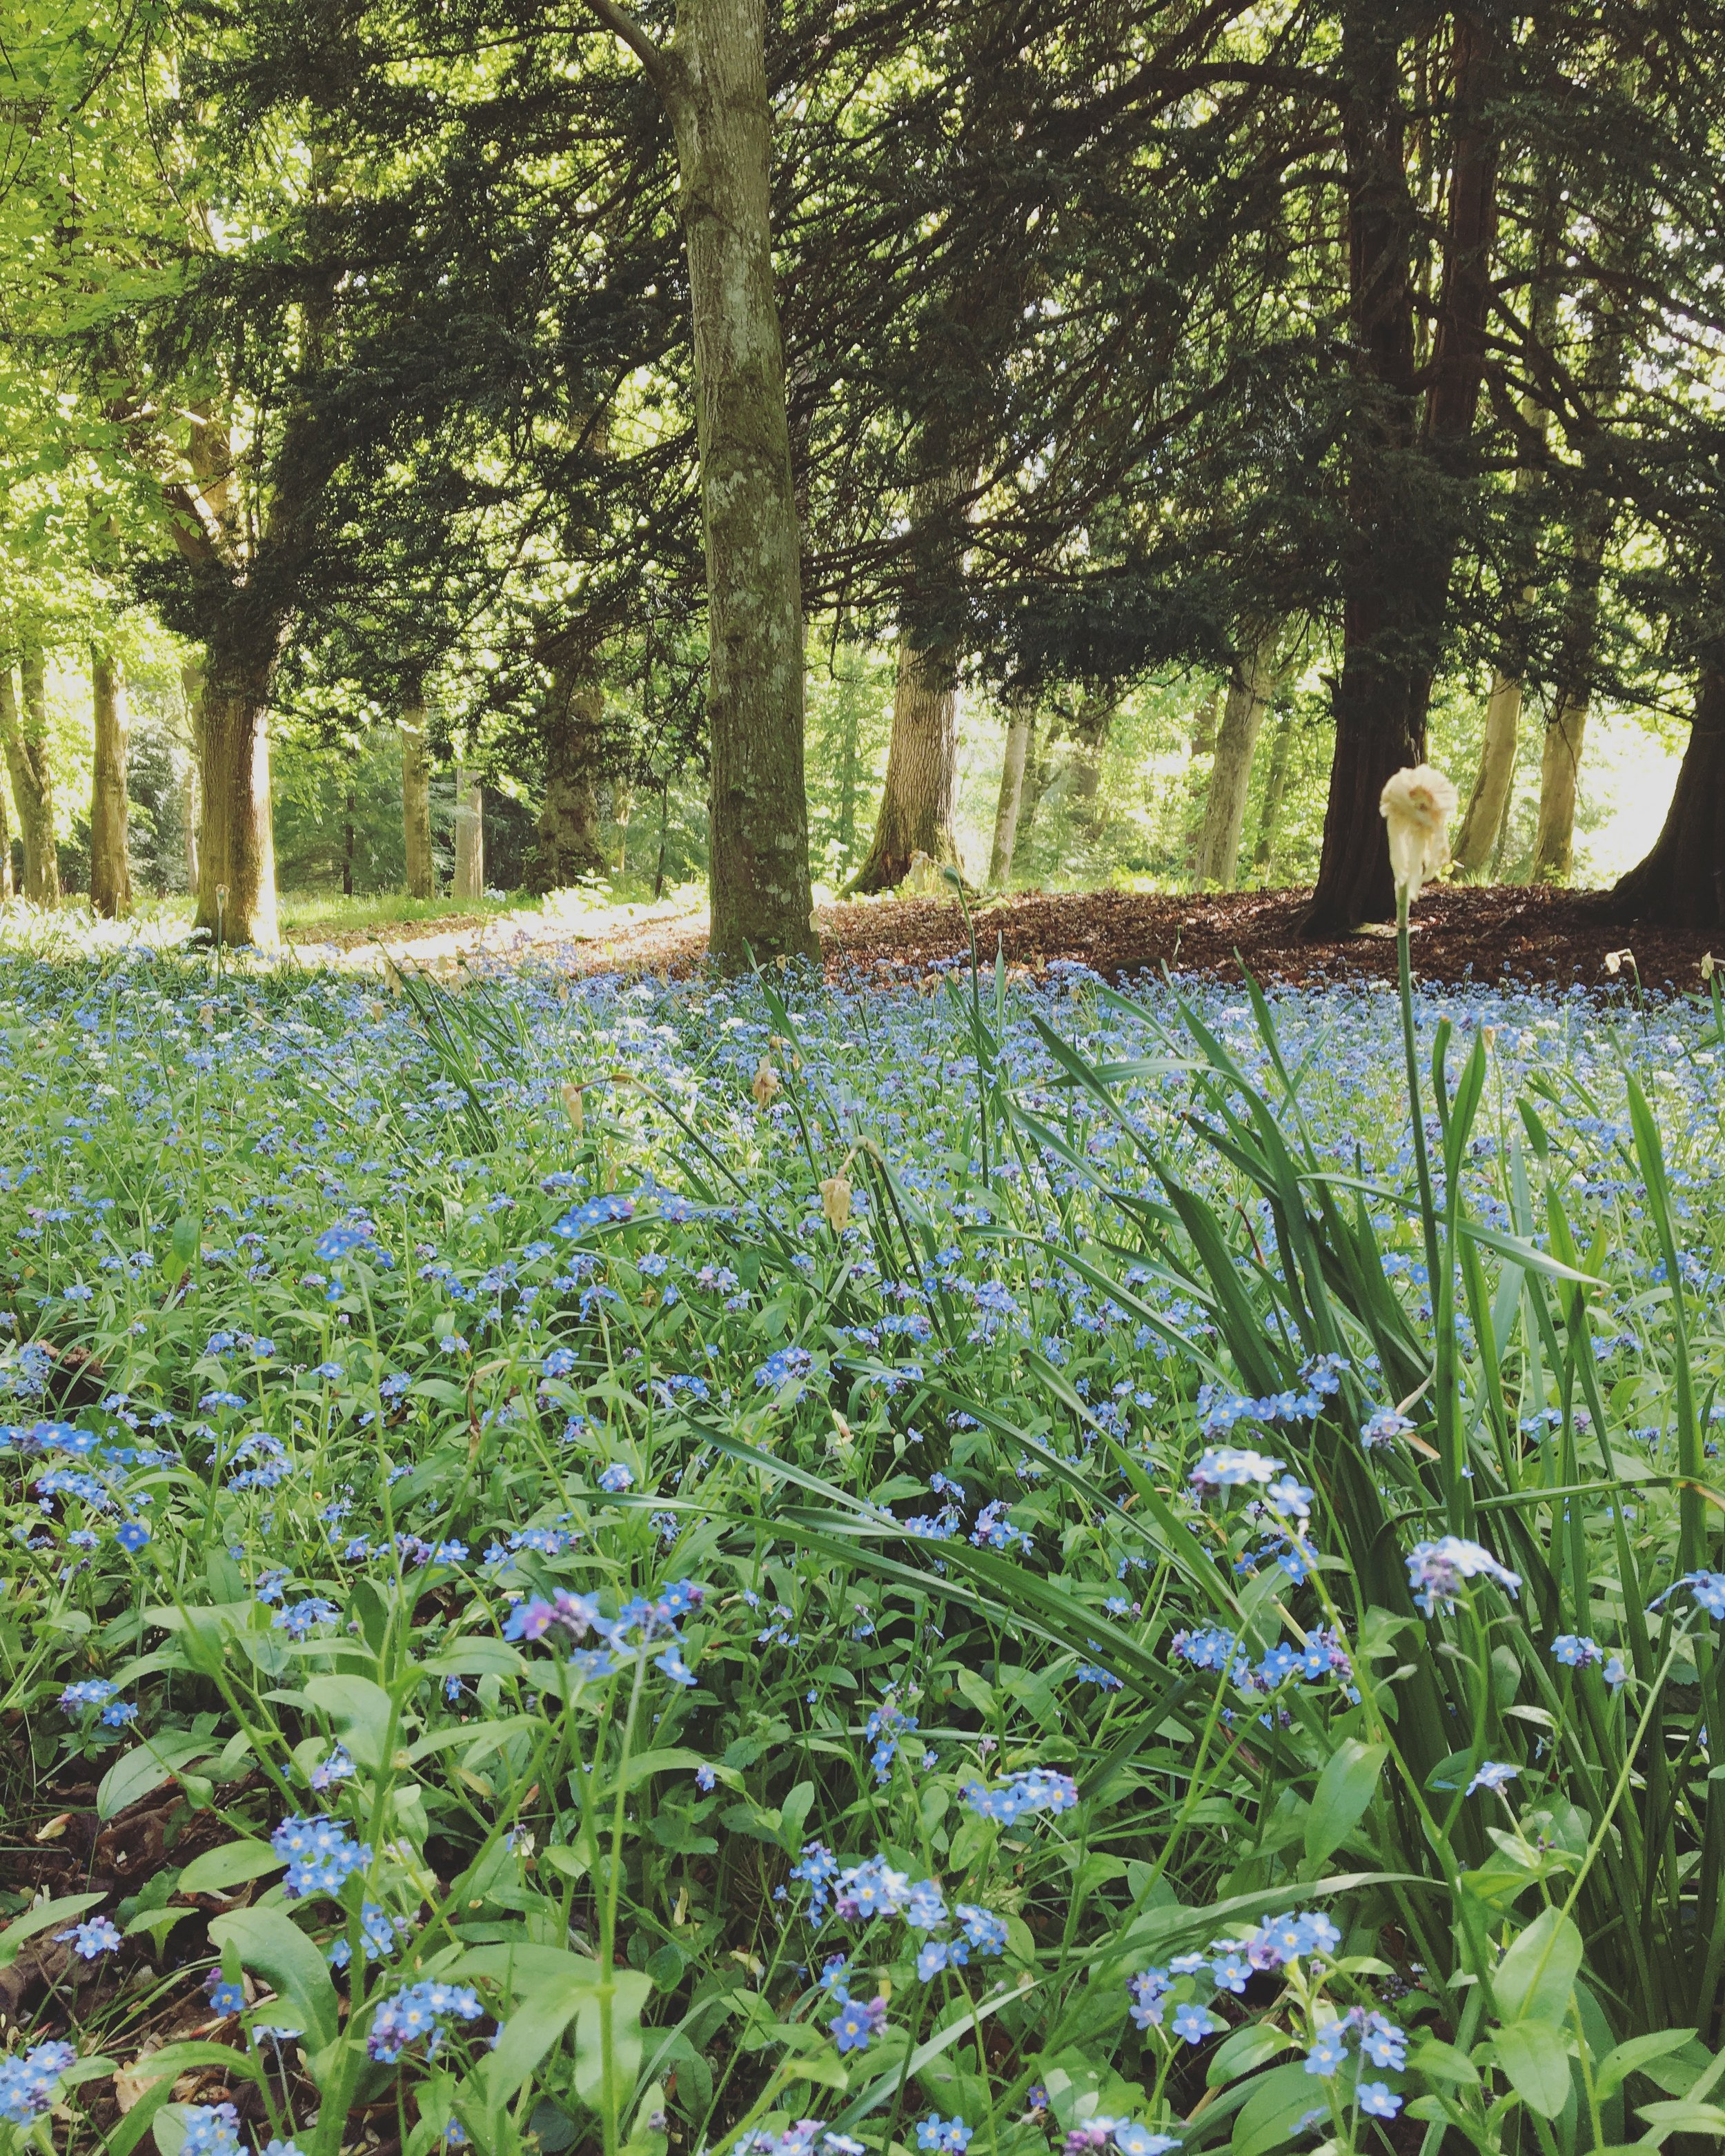 A carpet of forget-me-nots at Scone Palace.